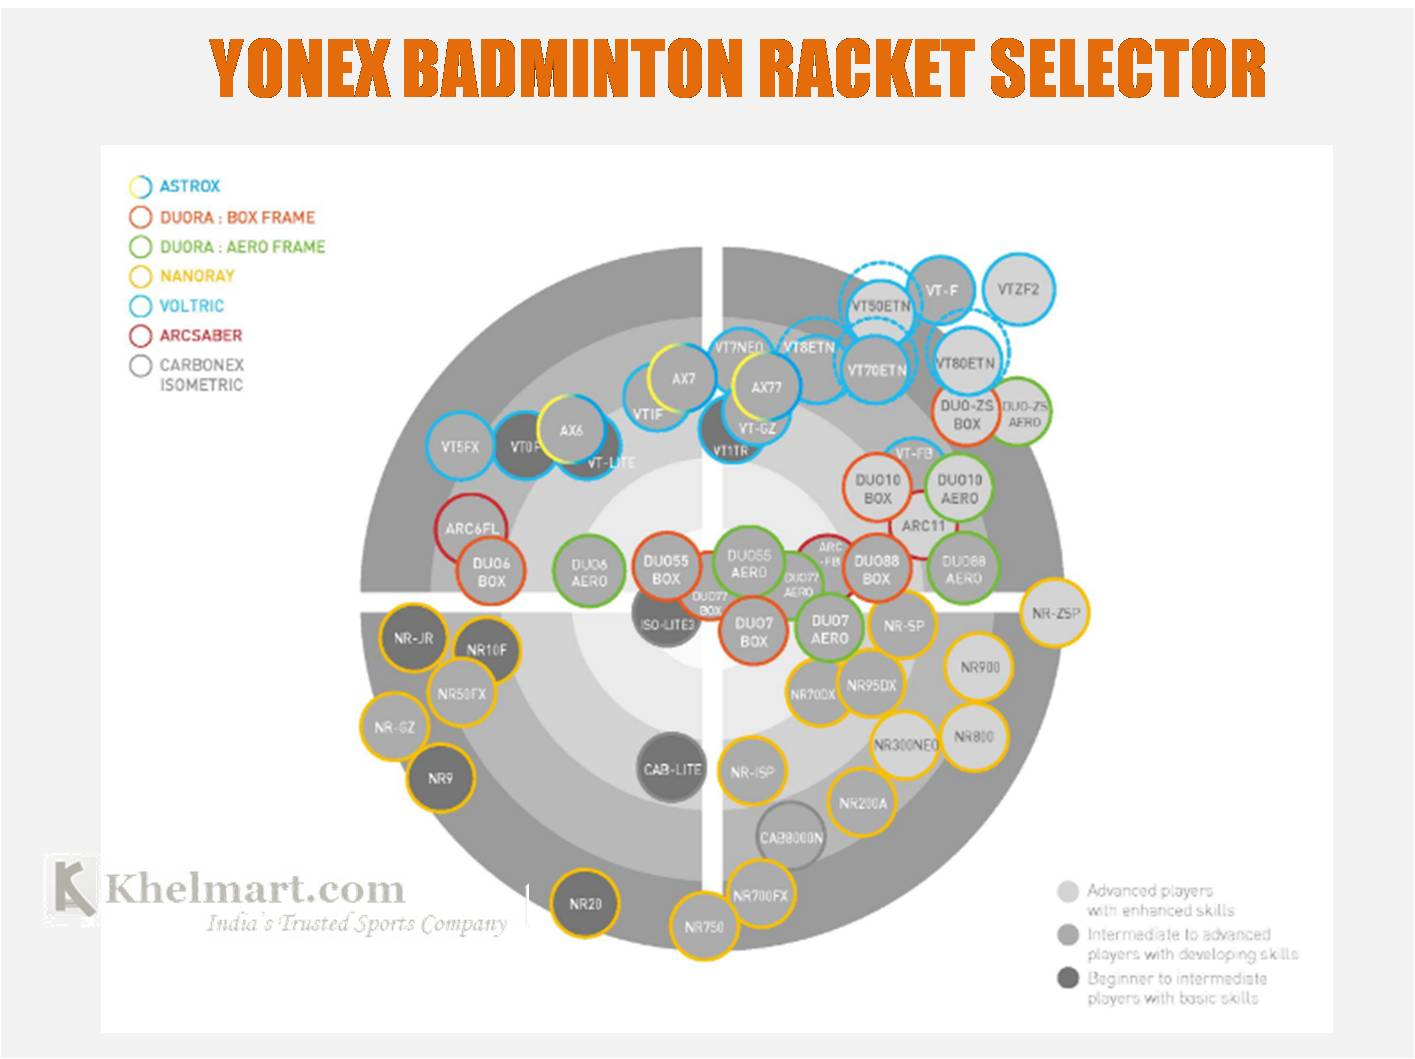 Yonex_Badminton_Rackets_Selector_Mapping_all_rackets_khelmart01.jpg